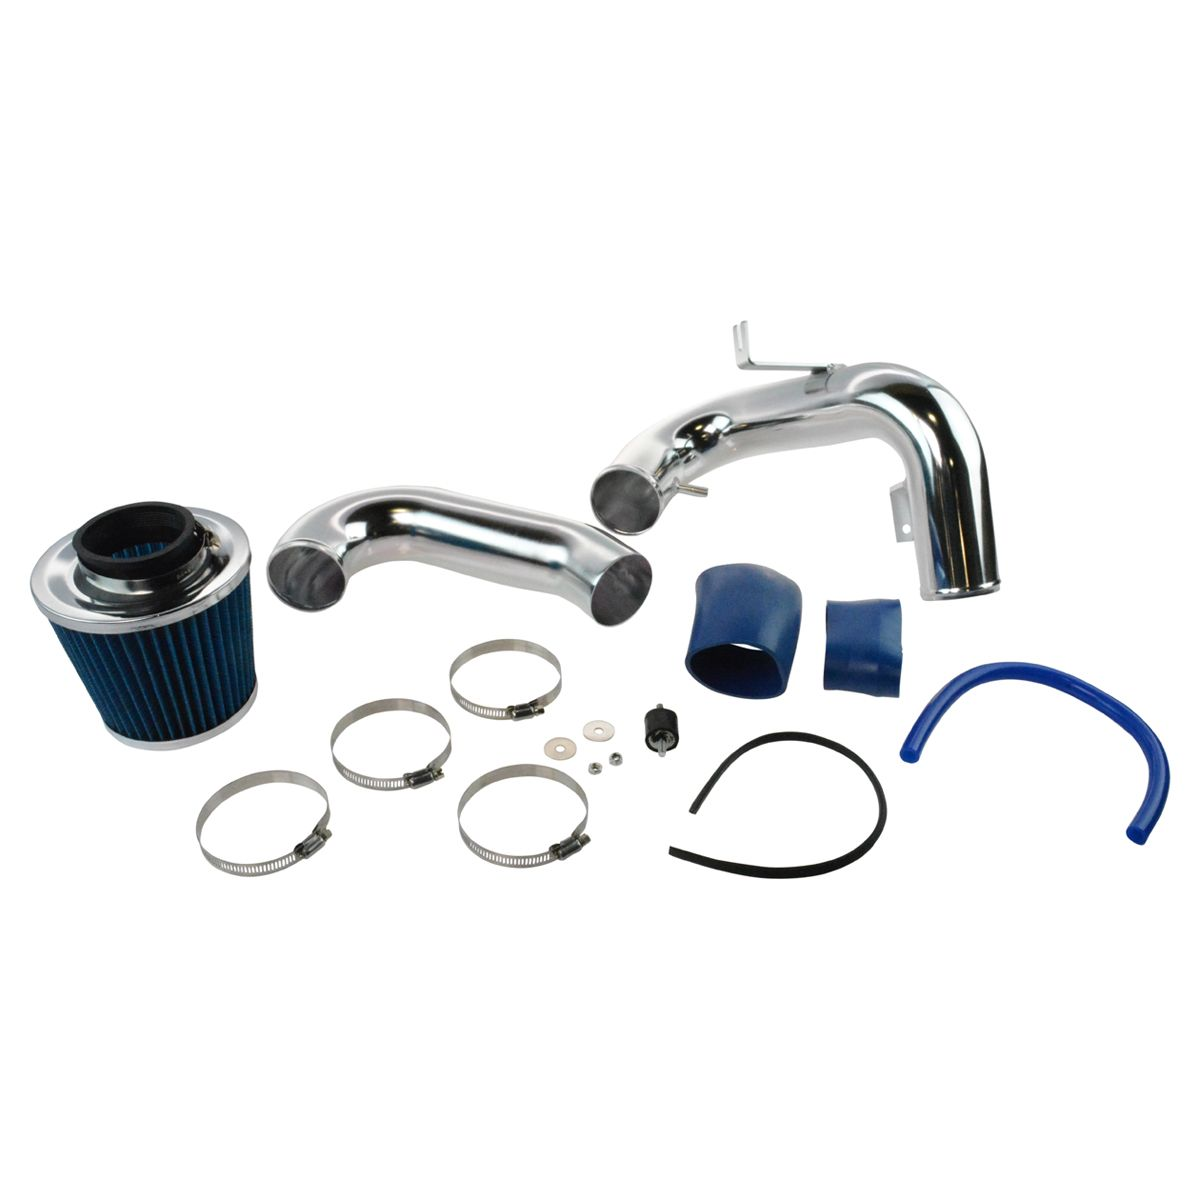 hight resolution of performance cold air intake cai with blue air filter for 00 05 toyota celica new